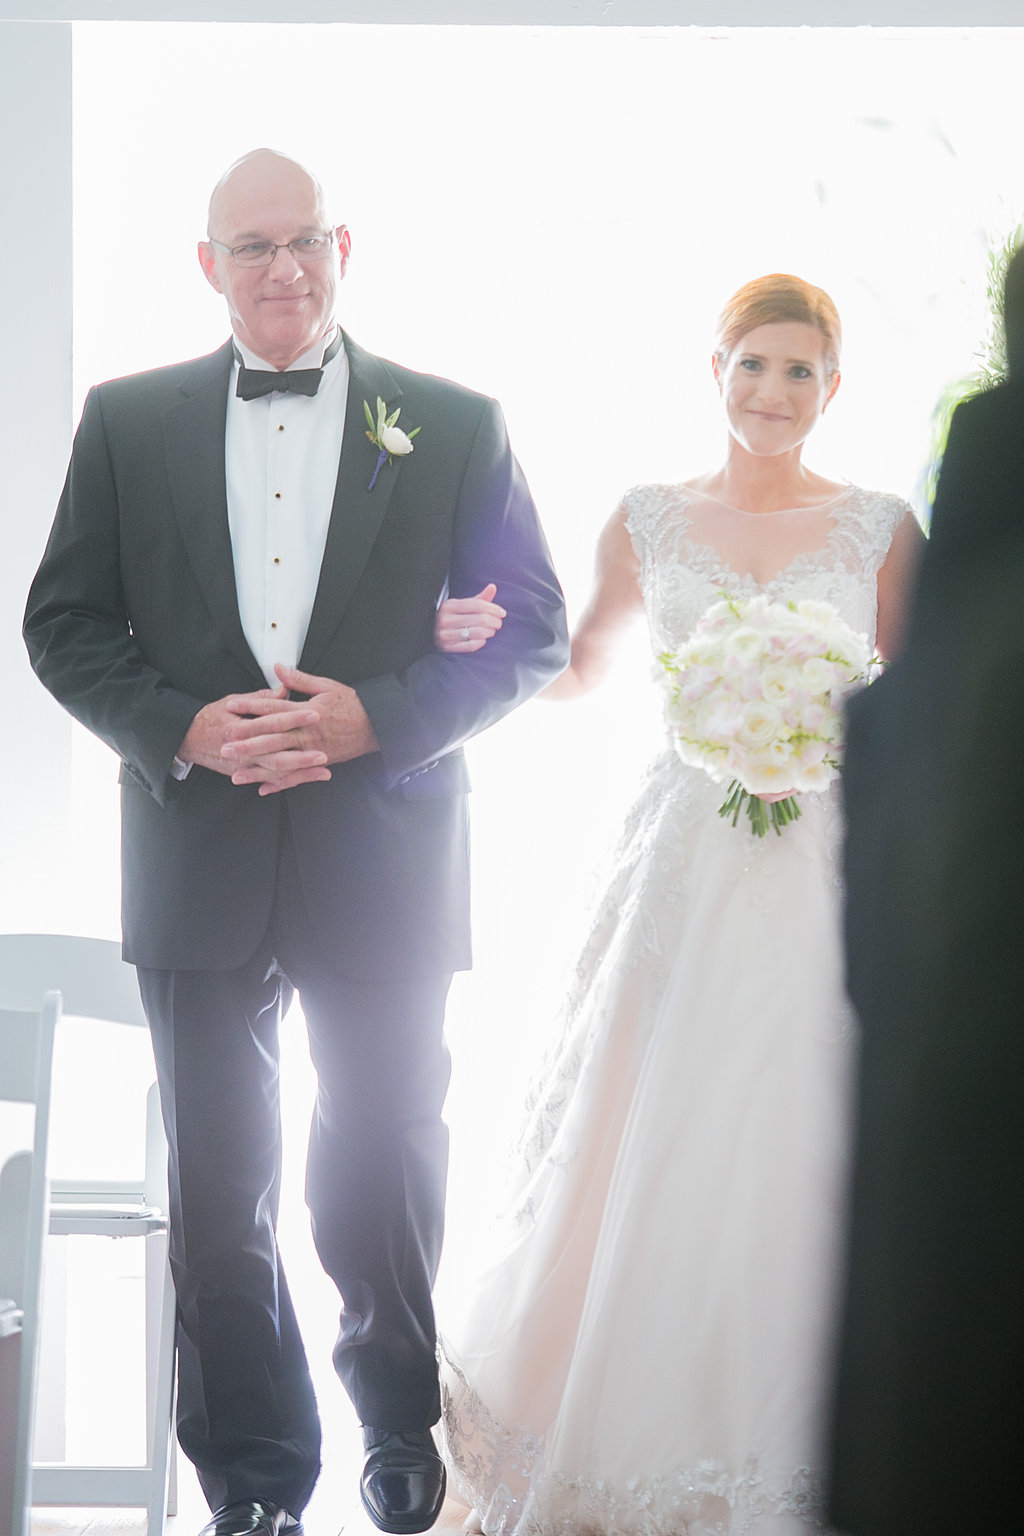 Bride and dad ceremony processional